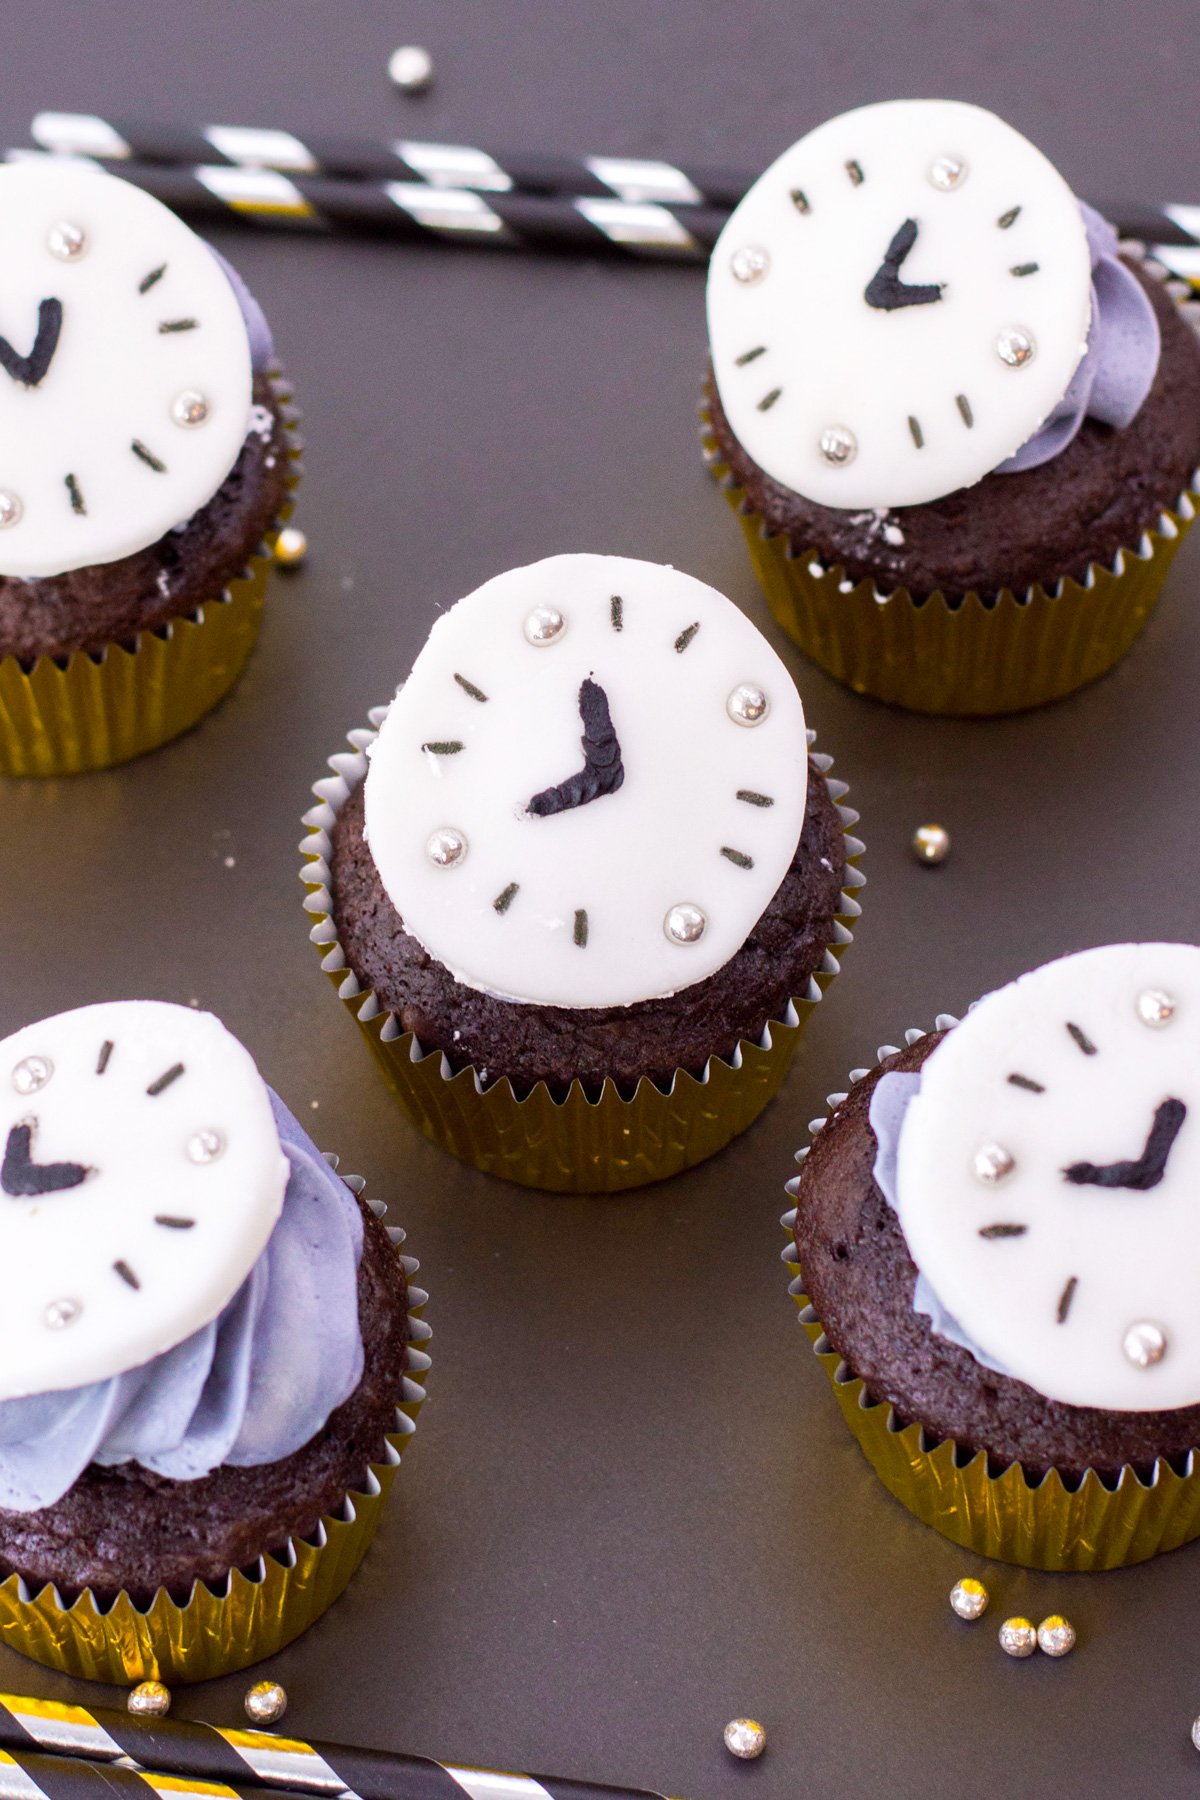 cupcakes with New Years fondant clocks